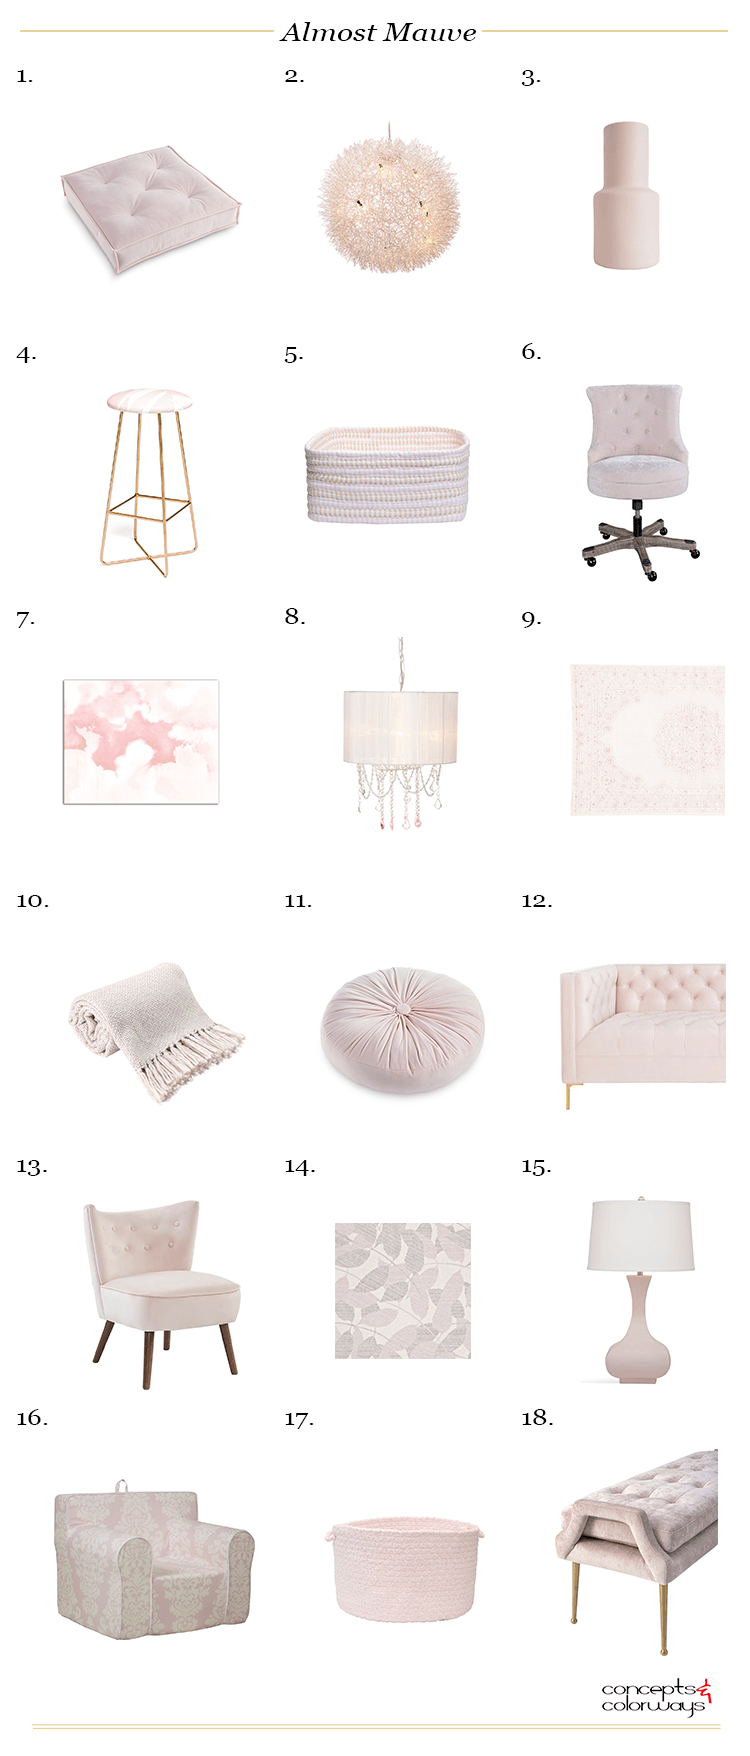 Pantone Almost Mauve A Barely There Color For Blush Pink Decor Cheap Dining Room Chairs Blush Pink Decor Pink Decor